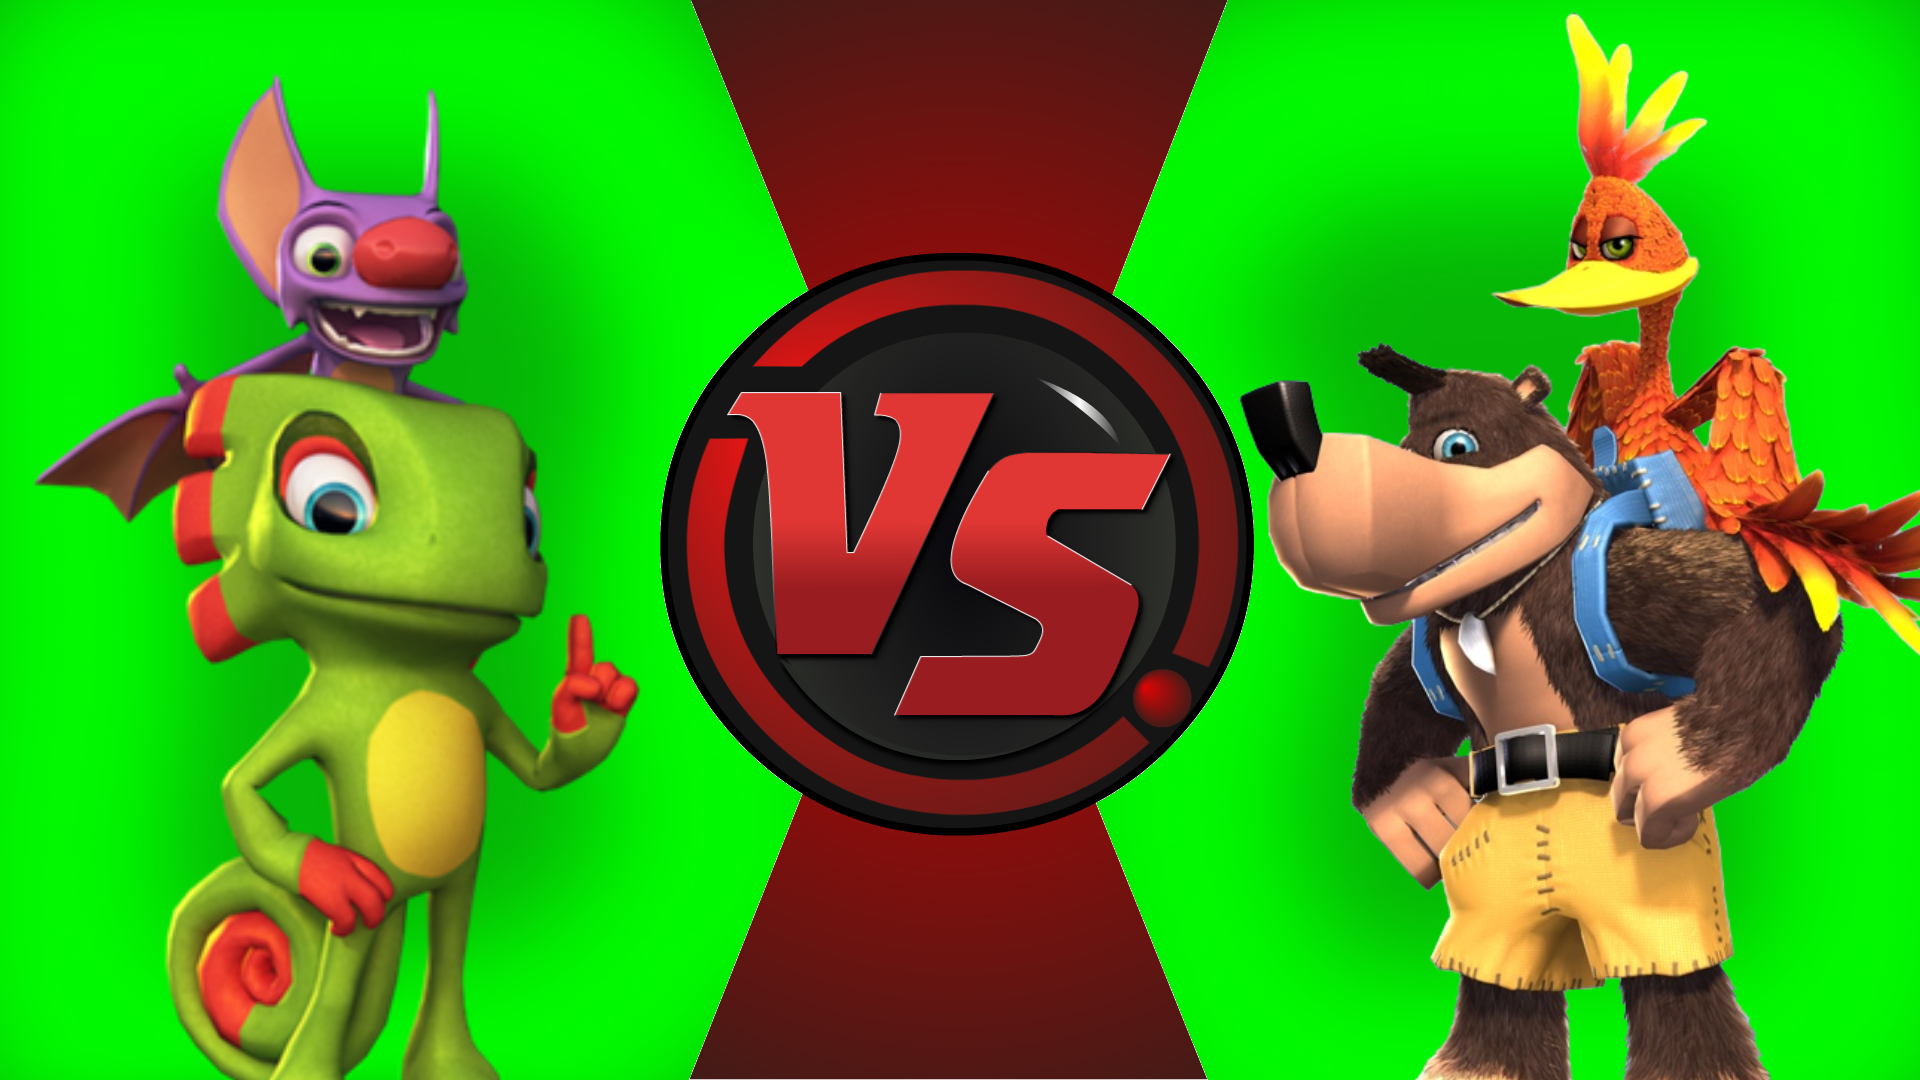 CFC|Yooka and Laylee vs. Banjo and Kazooie by Vex2001